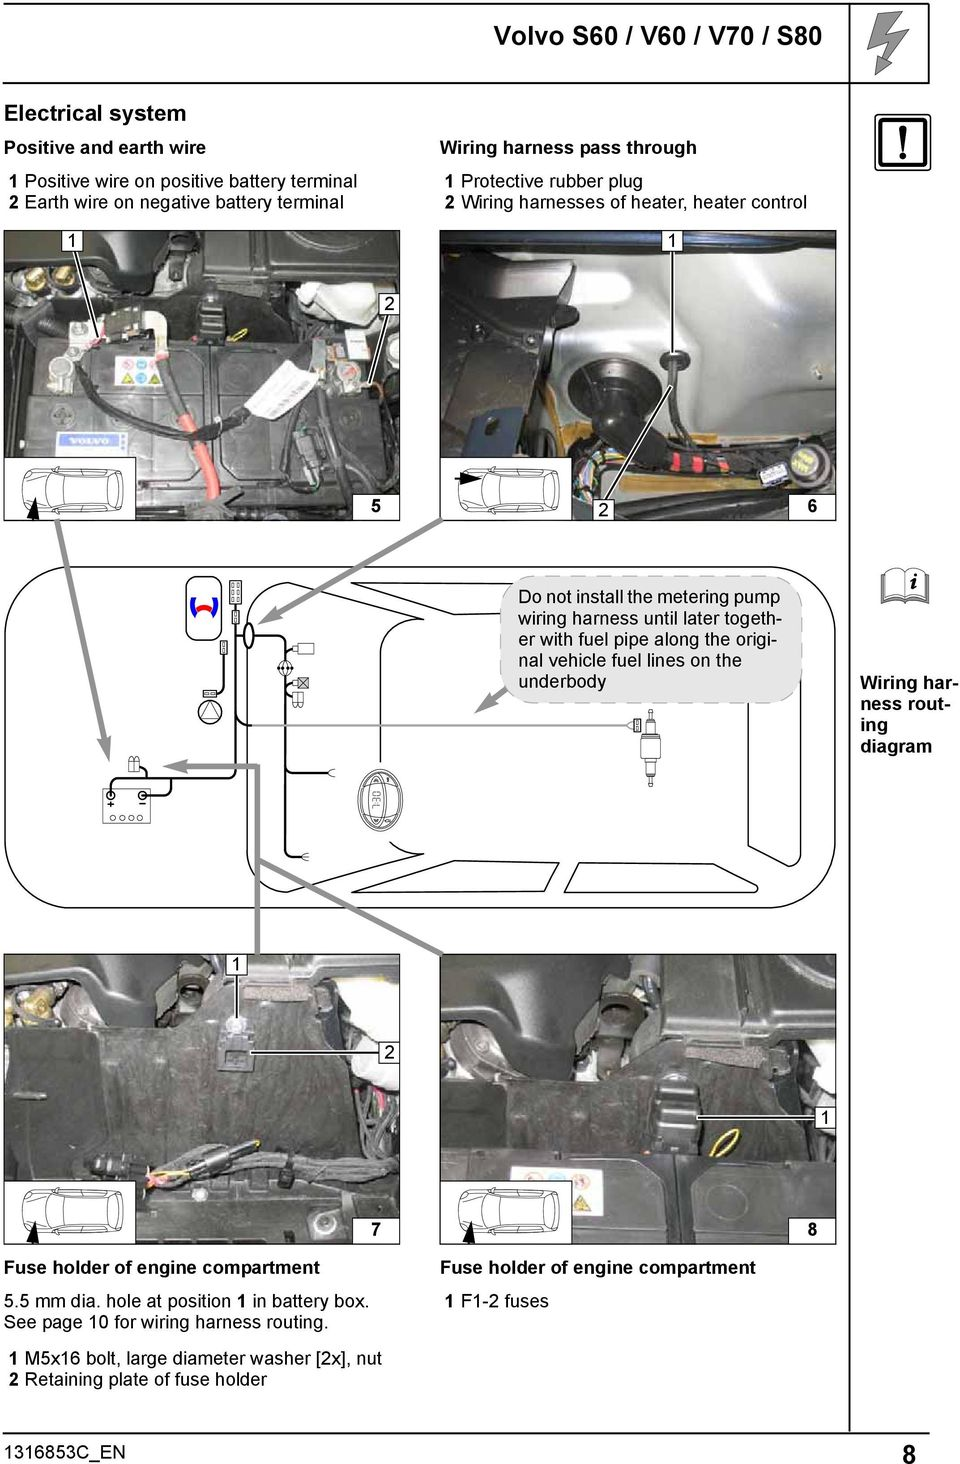 Always Follow All Webasto Installation And Repair Instructions Vw Jetta Vr6 Engine Diagram Additionally On Harley Fuel Pet Along The Original Vehicle Lines Underbody Wiring Harness Routing 7 8 Fuse